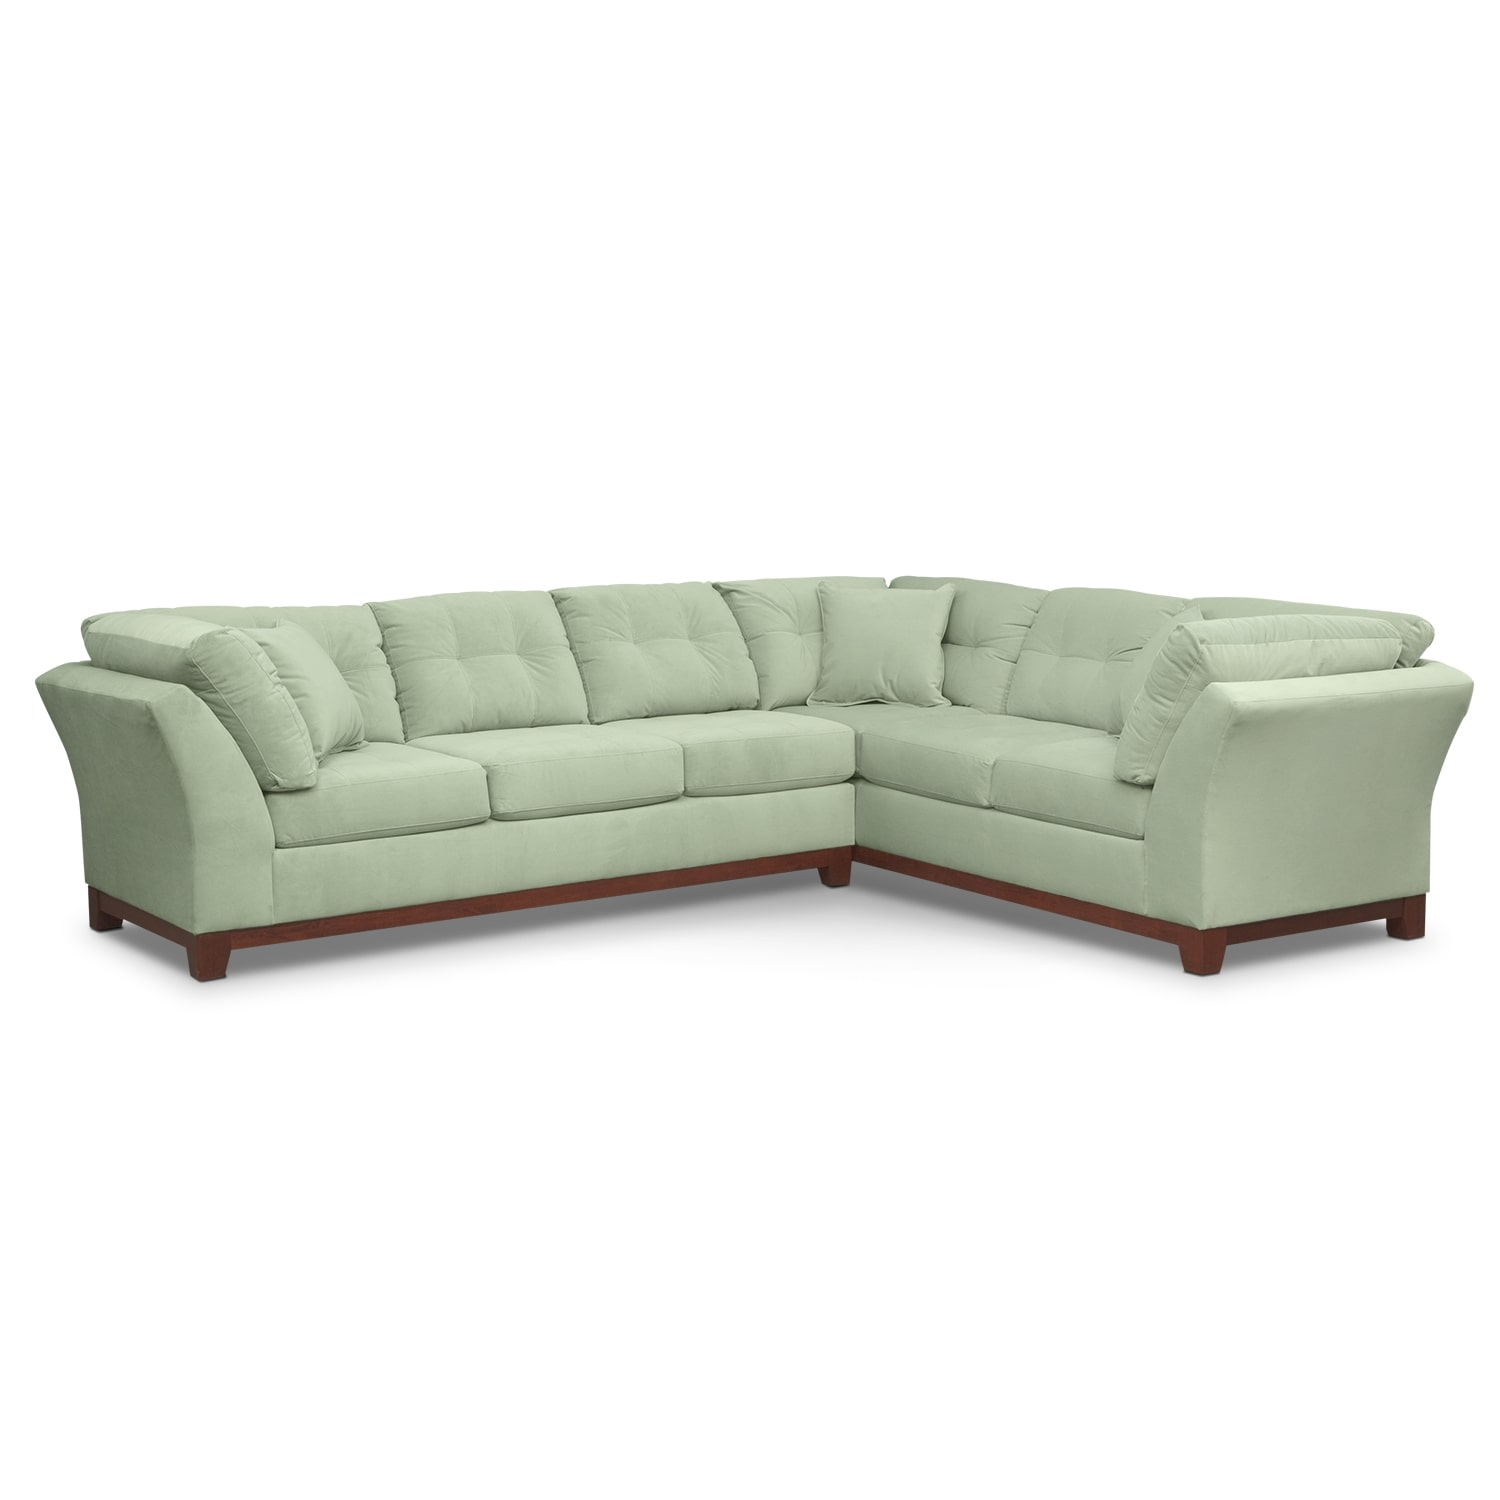 Living Room Furniture - Solace Spa II 2 Pc. Sectional (Reverse)